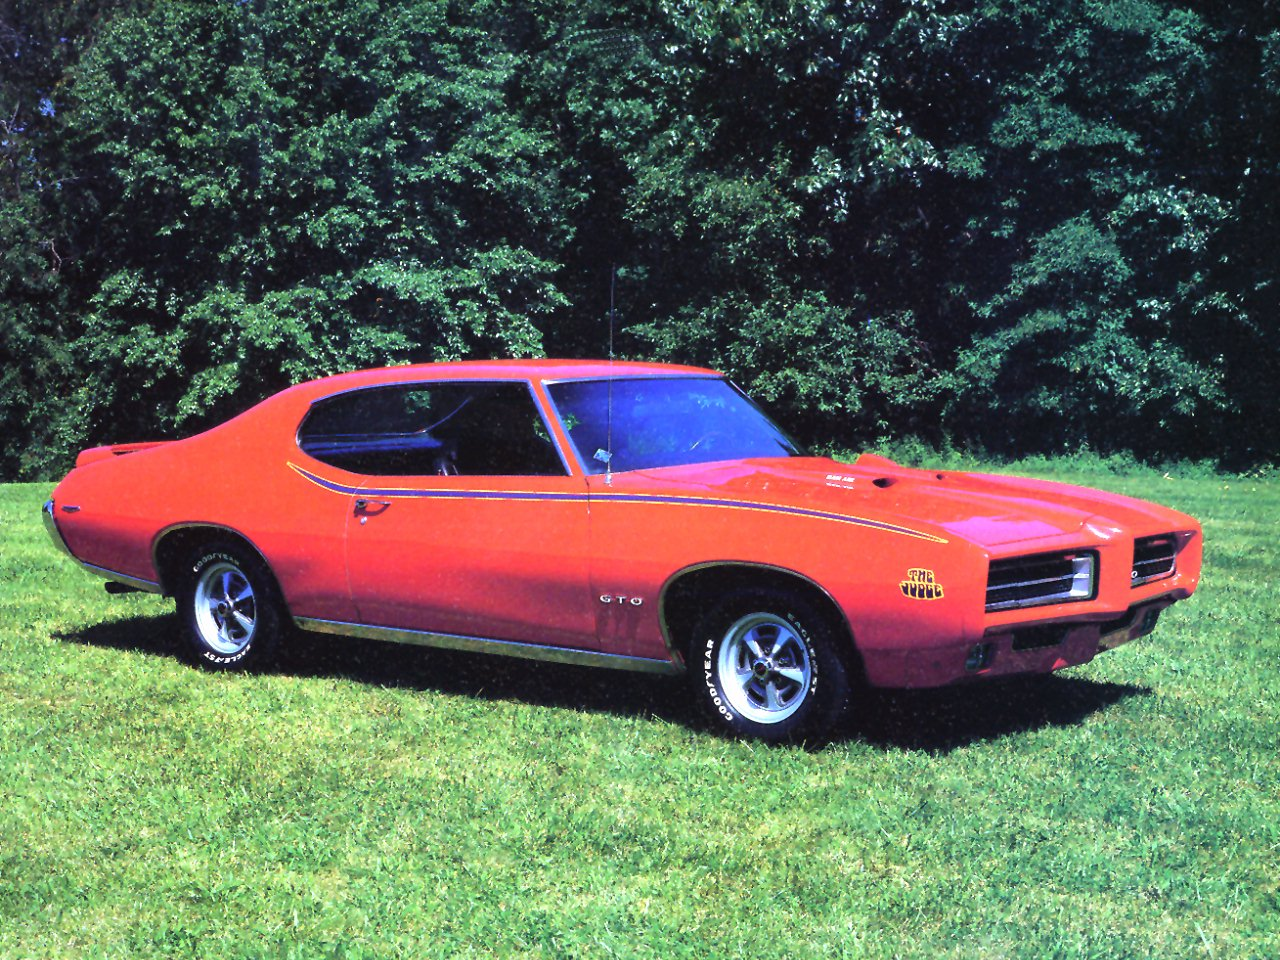 1969 Pontiac GTO The Judge Orange Fvr